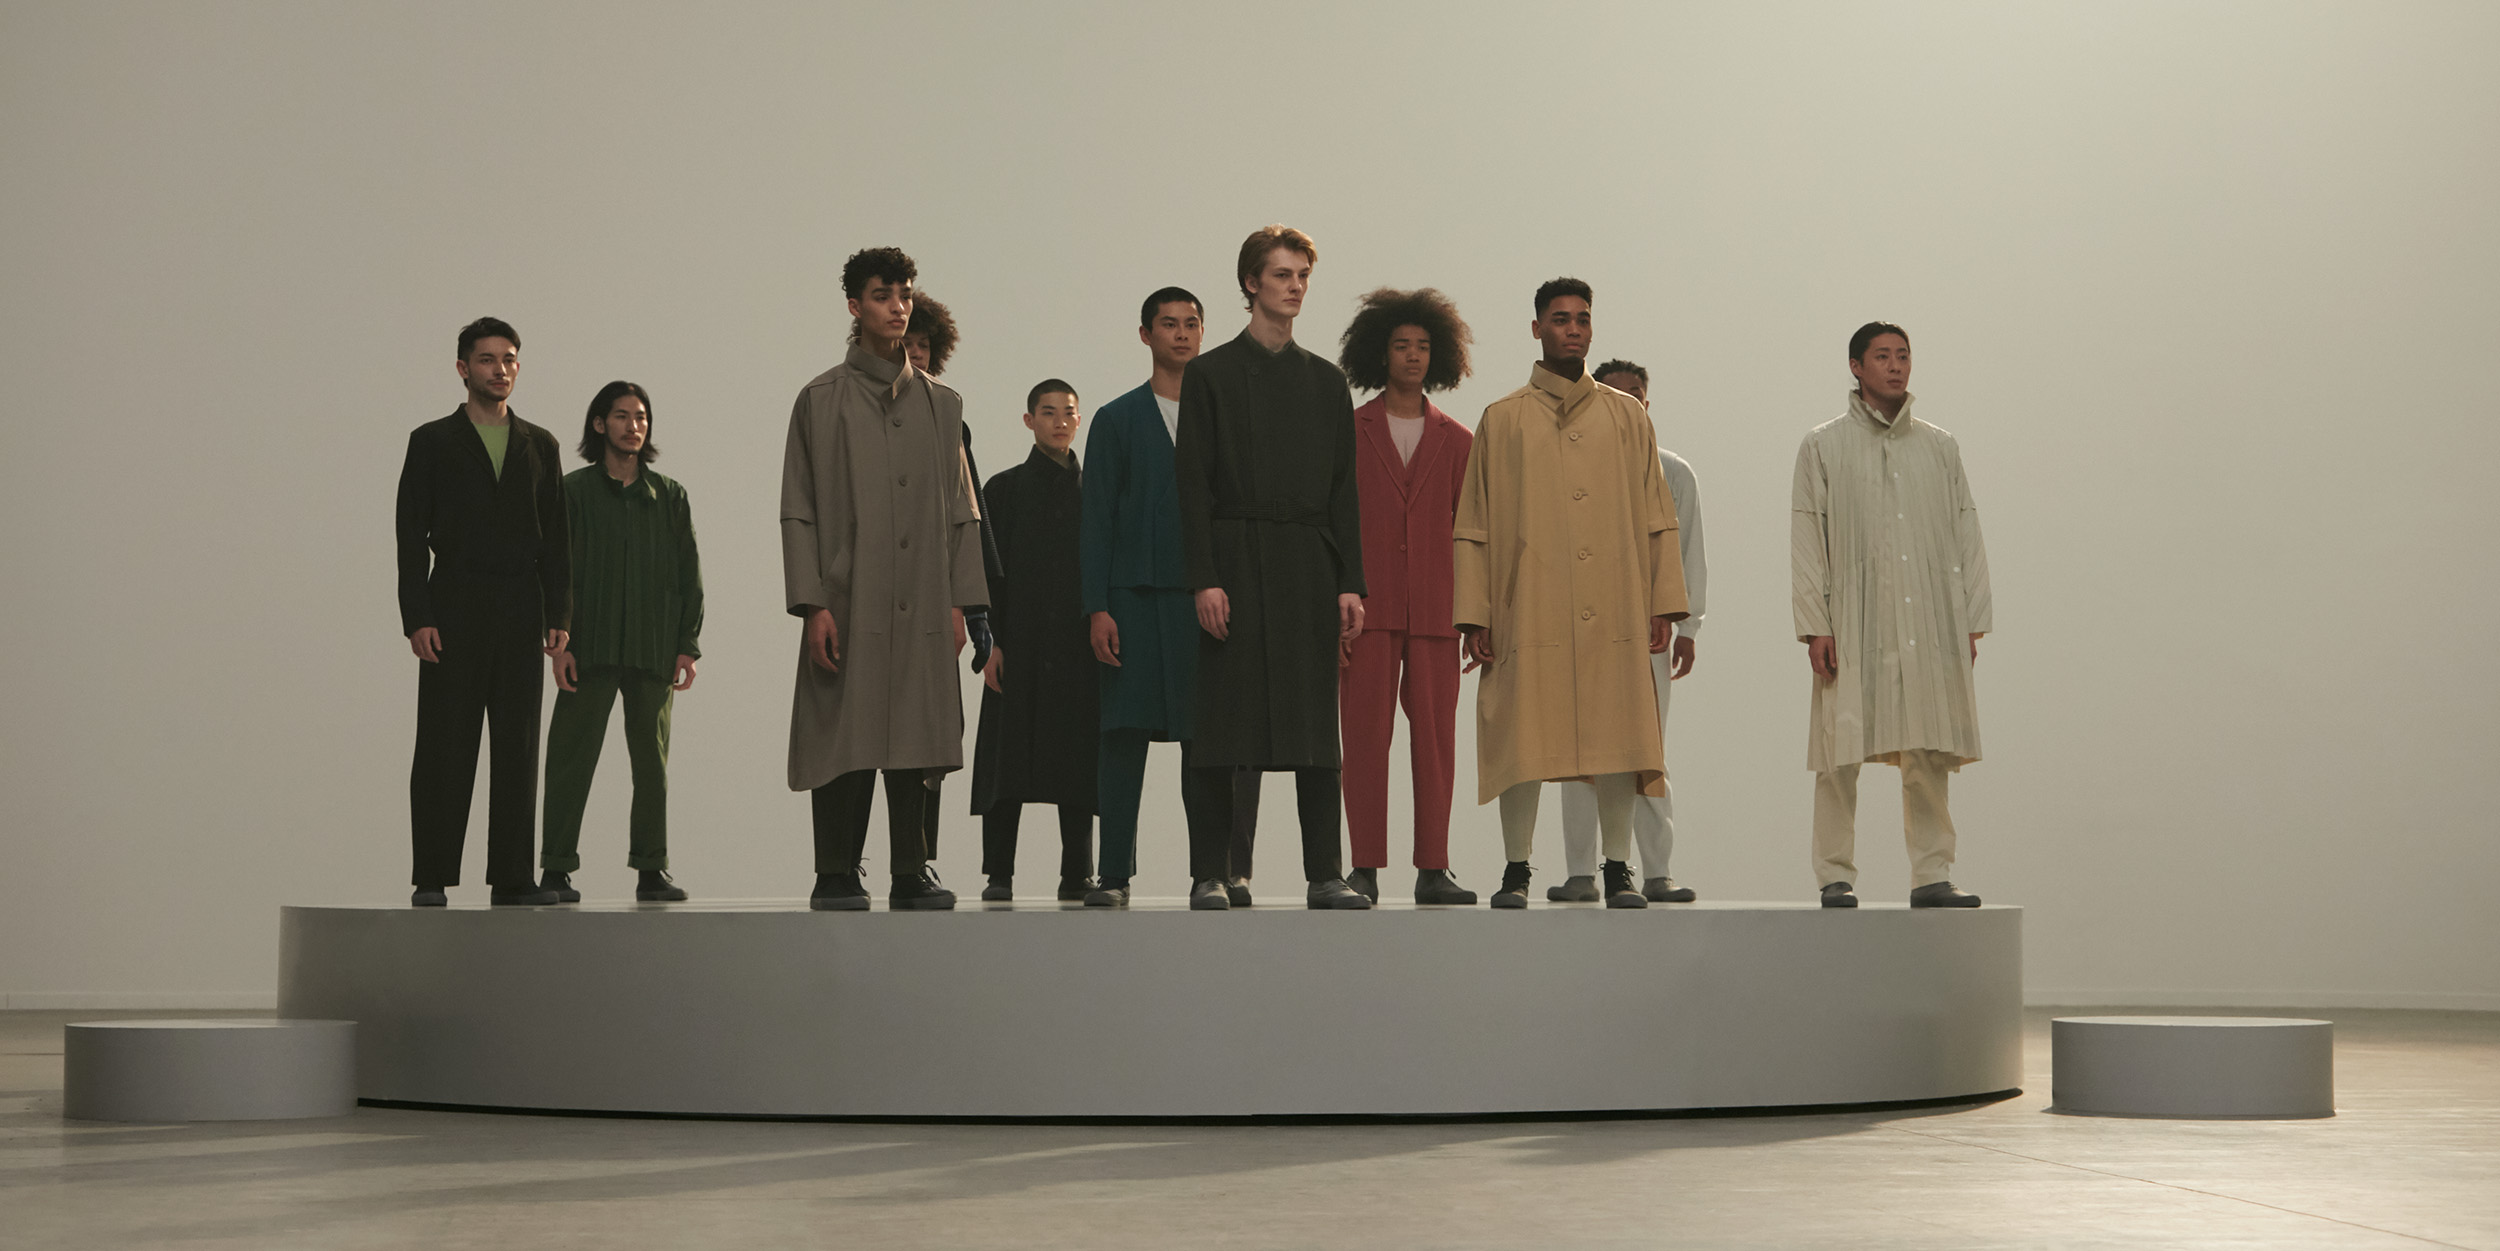 The perfect pleat: Homme Plissé Issey Miyake's latest presentation finds freedom in the folds